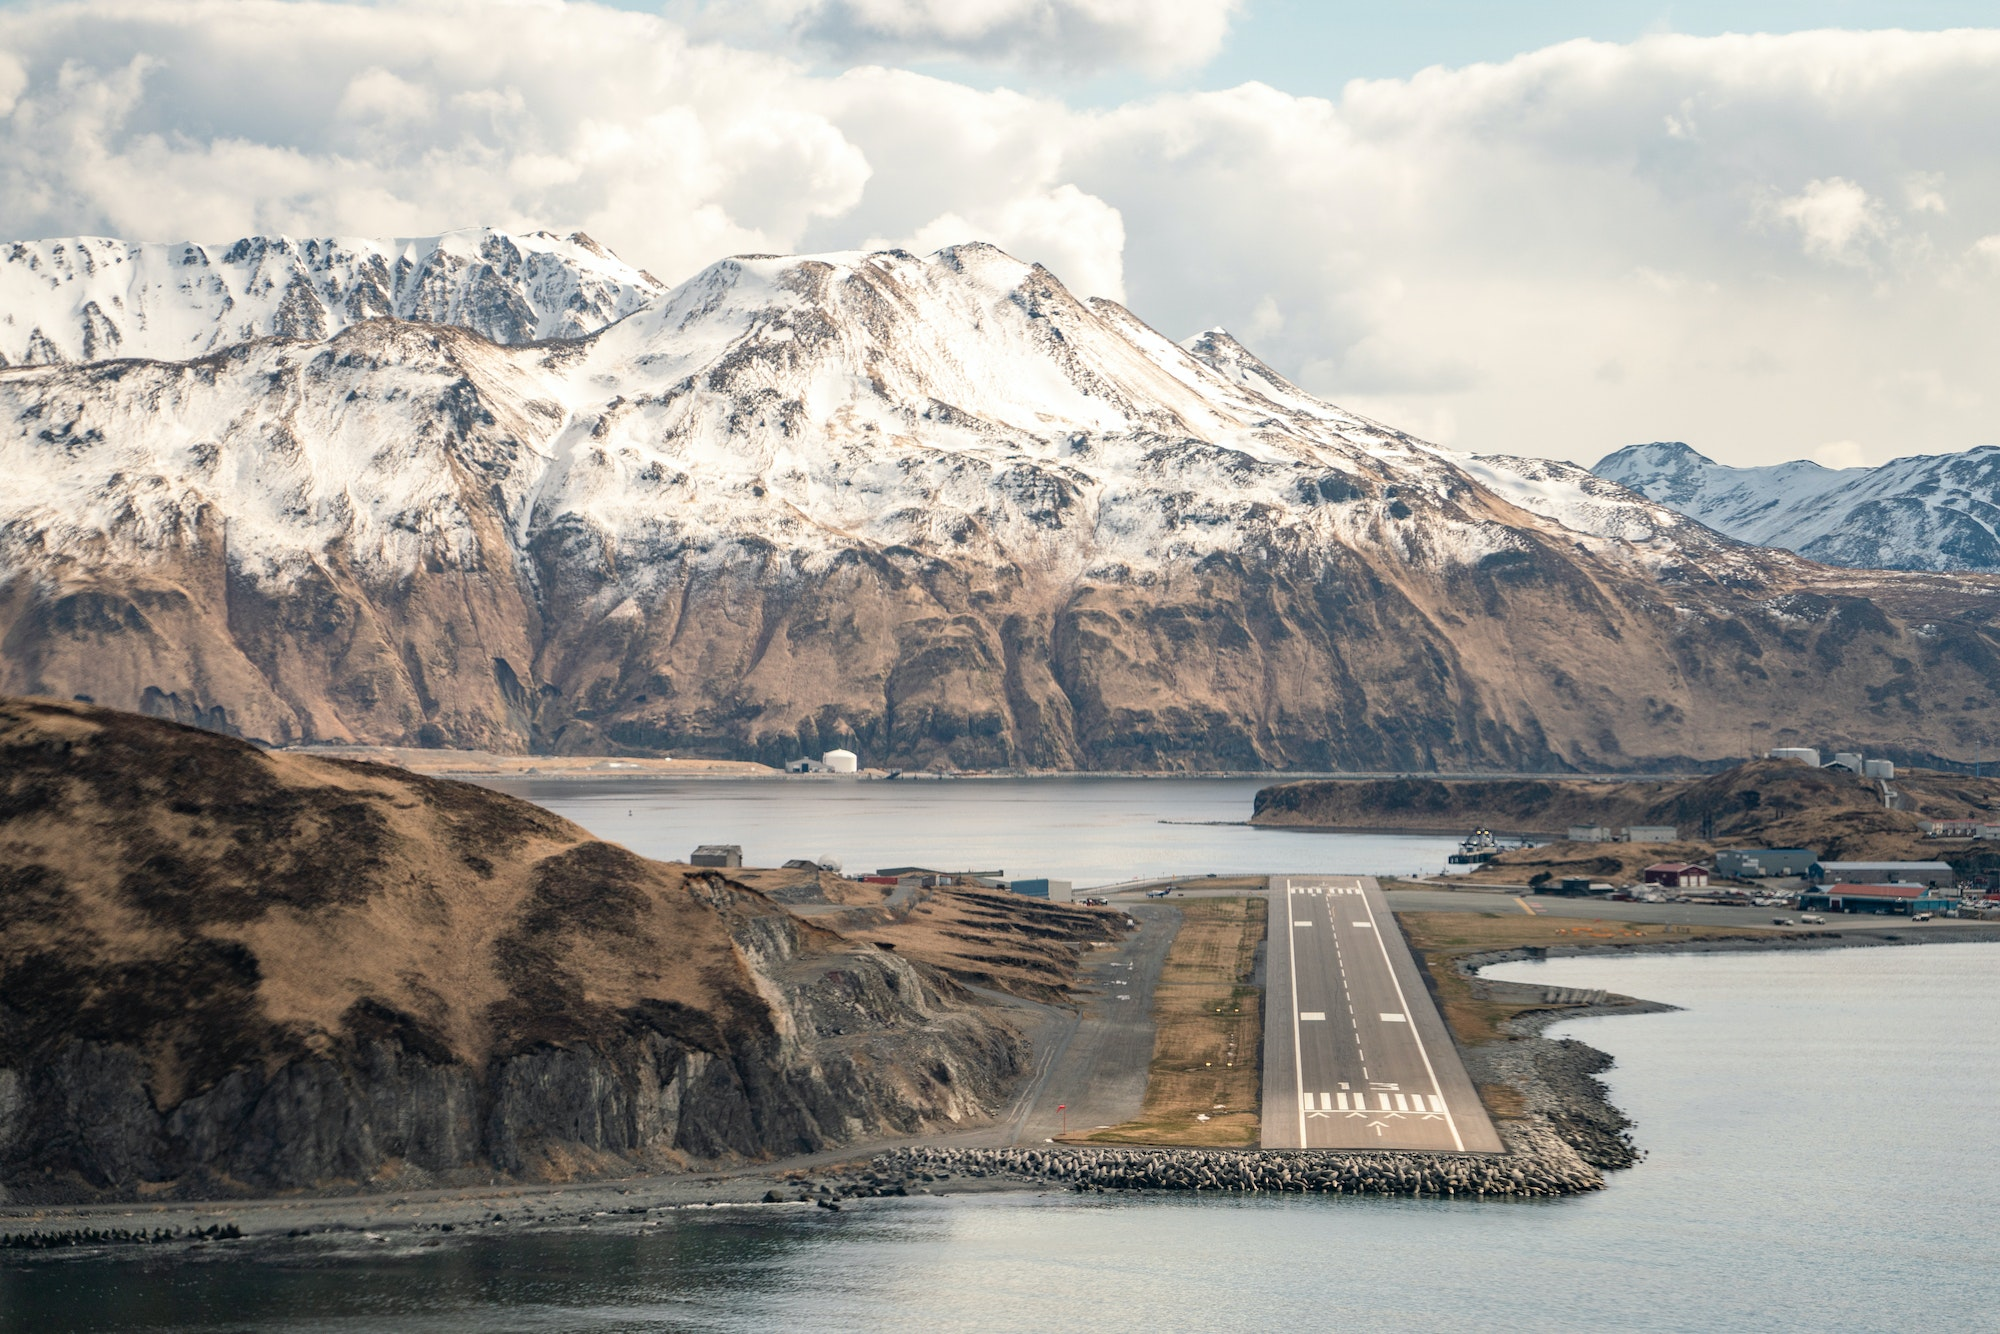 """Native Aleut communities have occupied the islands for some 8,000 years. """"Today, Dutch Harbor is one of the few islands in the Aleutian chain with yearly inhabitants,"""" Burkard explains."""